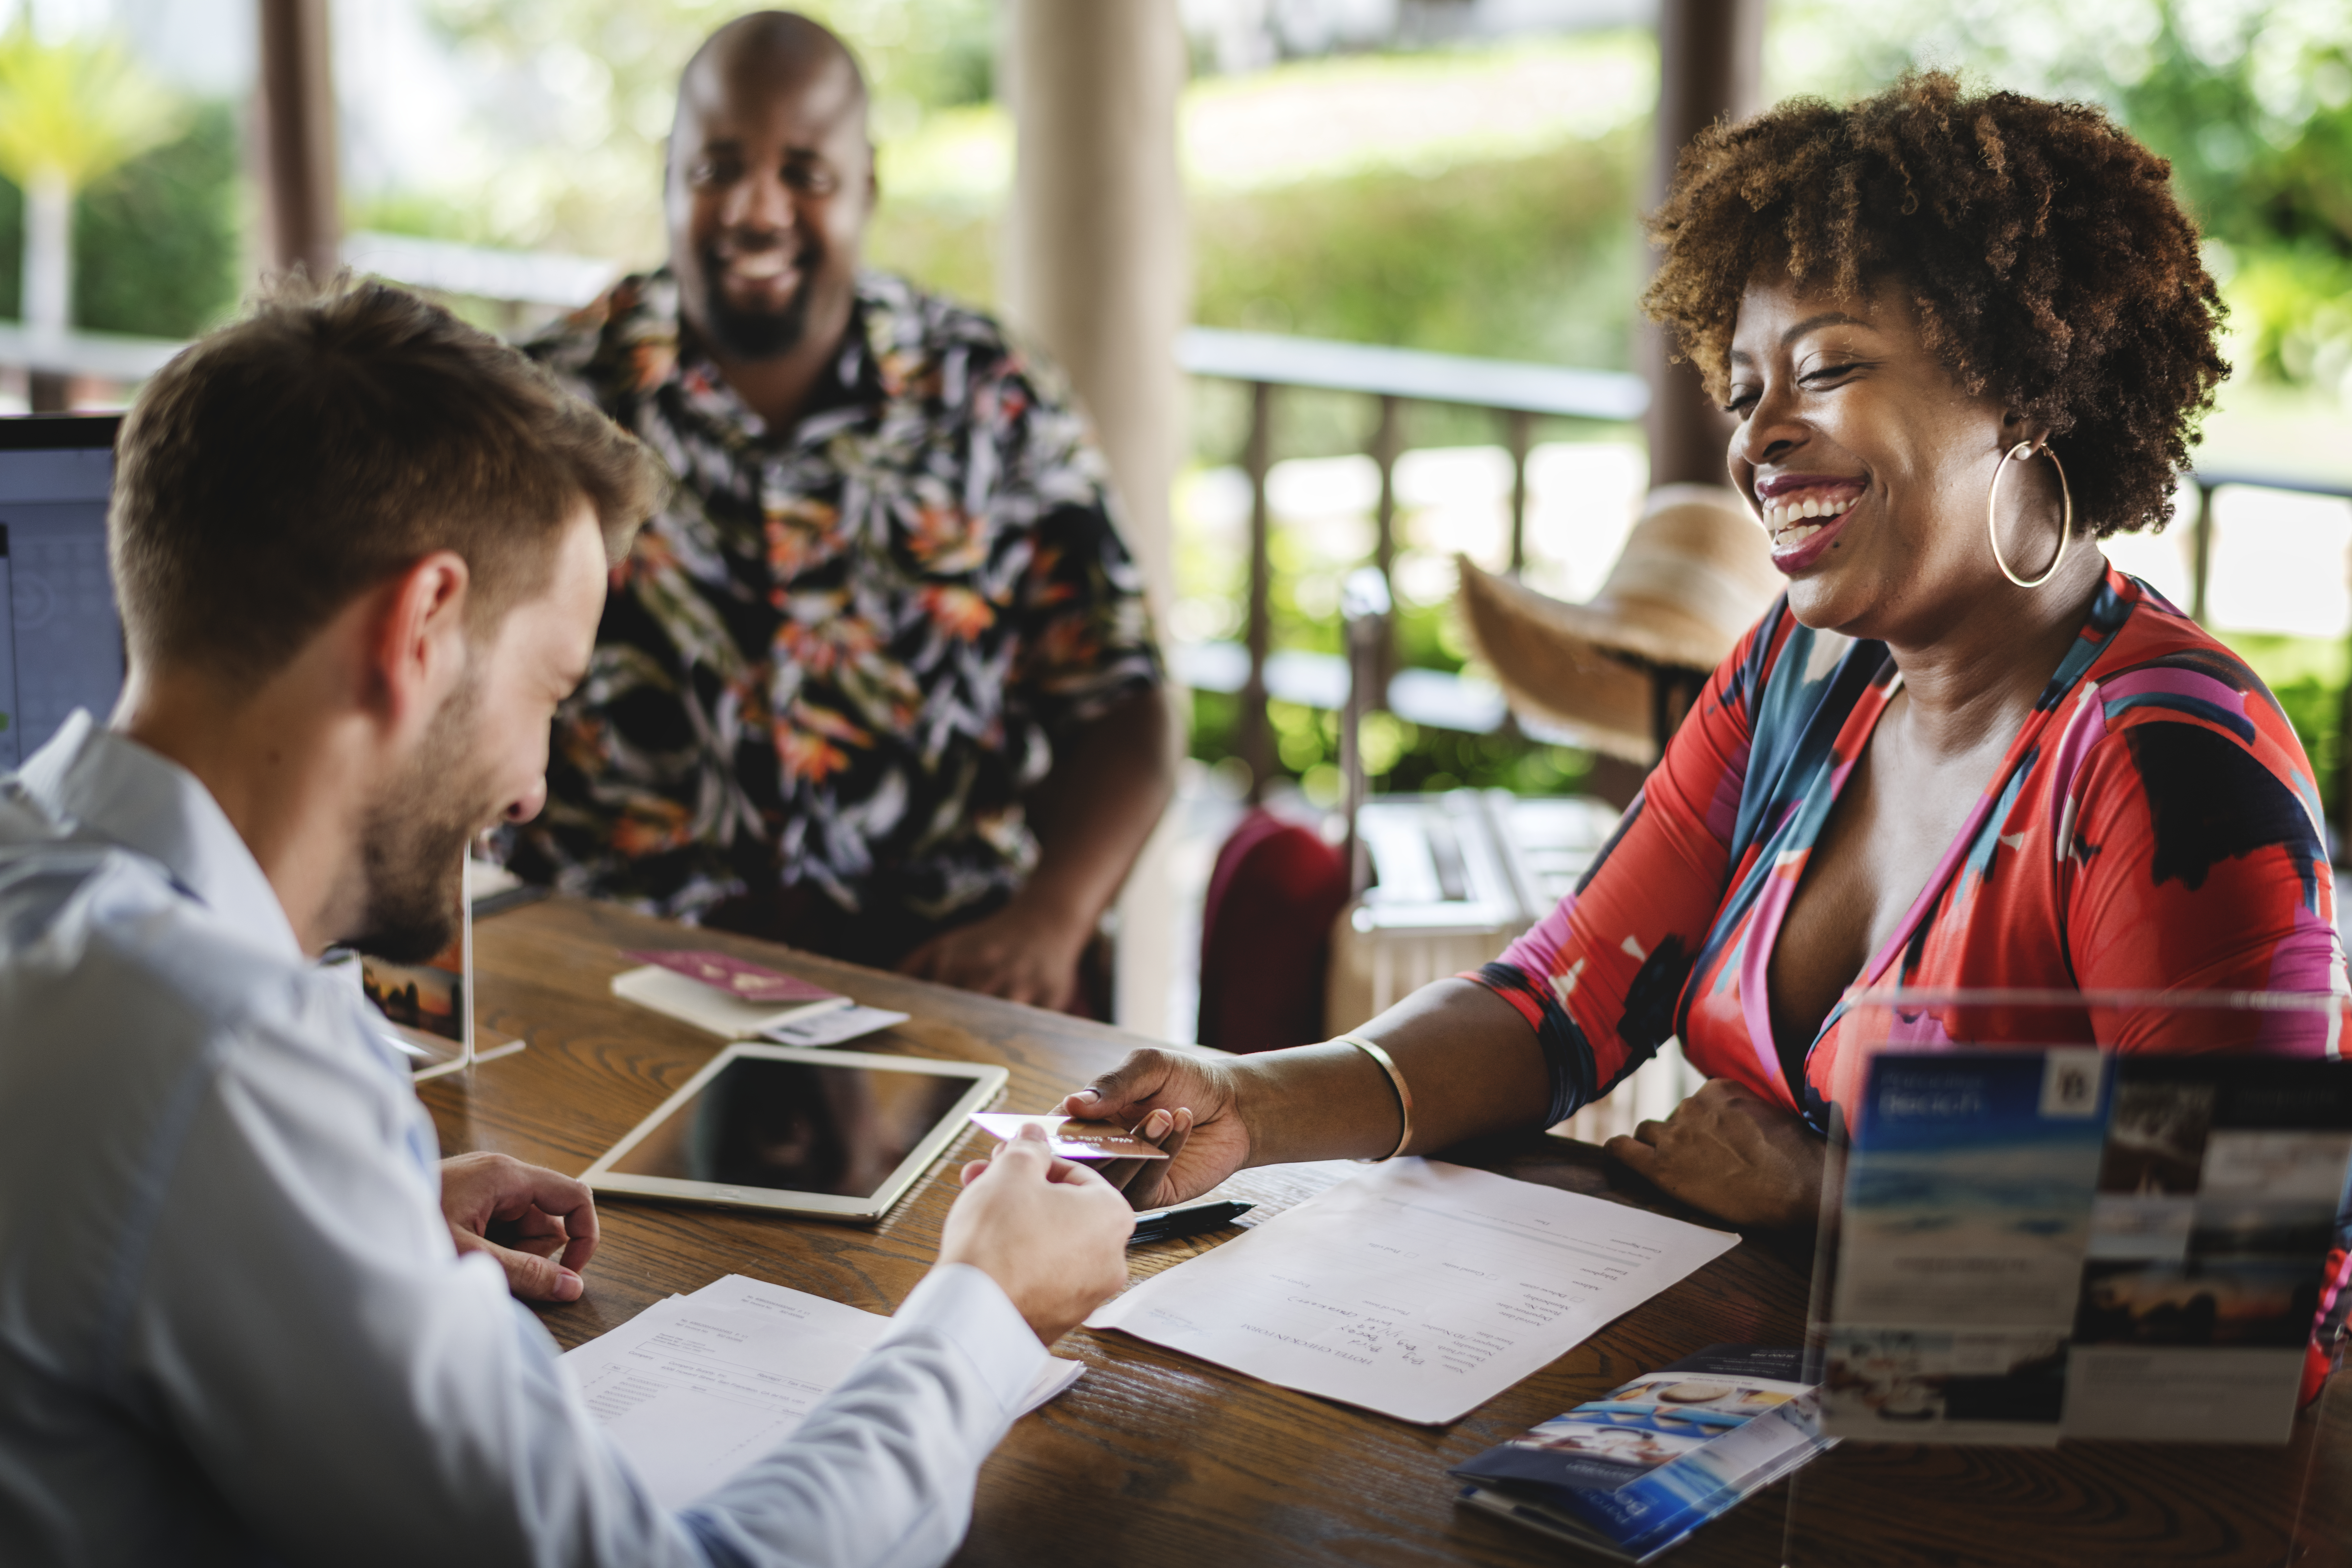 WHAT TYPE OF RELATIONSHIP DO YOUR CUSTOMERS EXPECT FROM YOU - Colin Shaw Customer Service Expert - Beyond Philosophy Blog